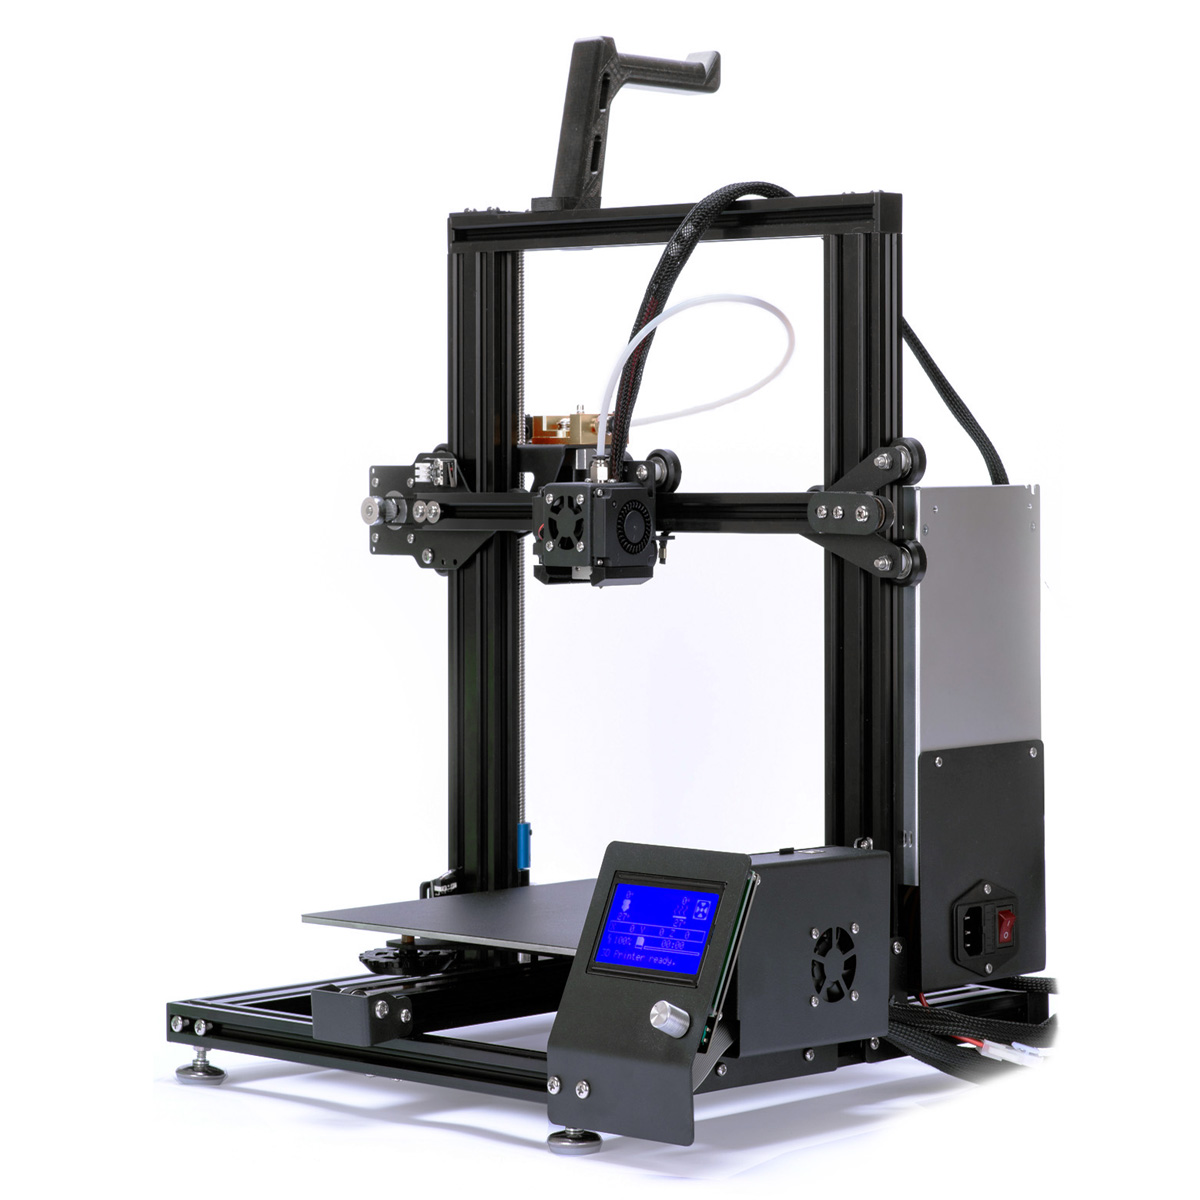 ADIMLab Gantry-S 3D Printer DIY Kit 230*230*260mm Printing Size Support  Power Resume/Filament Run-out Detector w/ Metal Extruder & 3 Fans for V6  Type